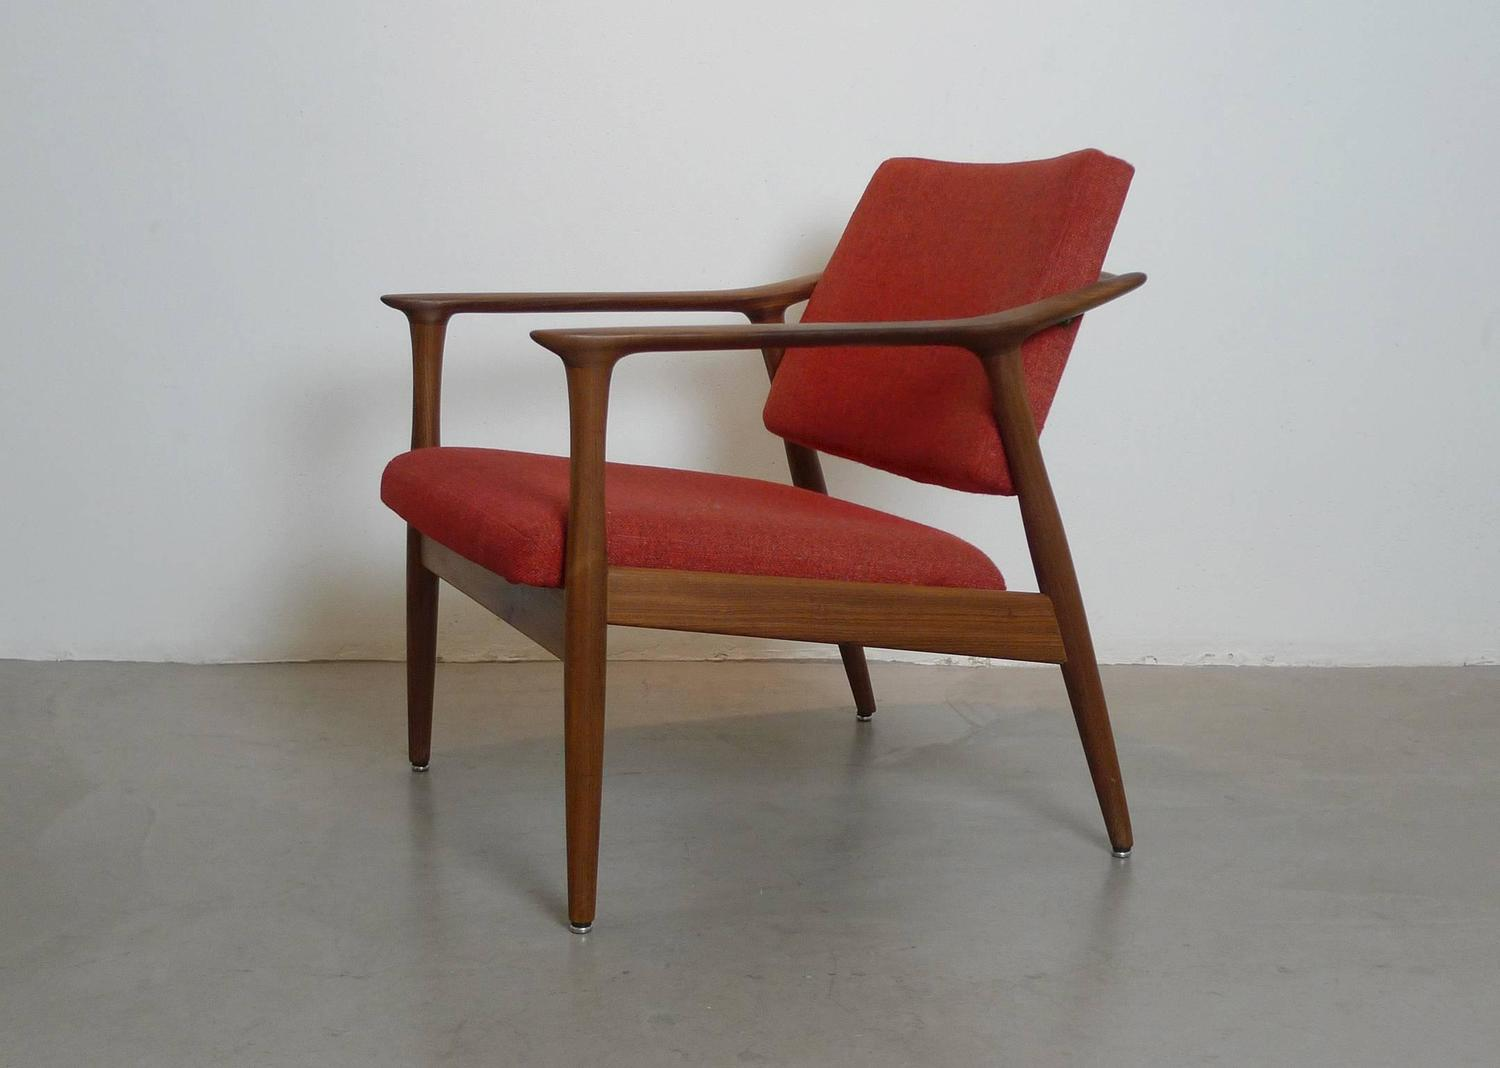 Sandvik Norway  City pictures : ... Chairs by Torbjørn Afdal for Sandvik Mobler, Norway, 1950s at 1stdibs